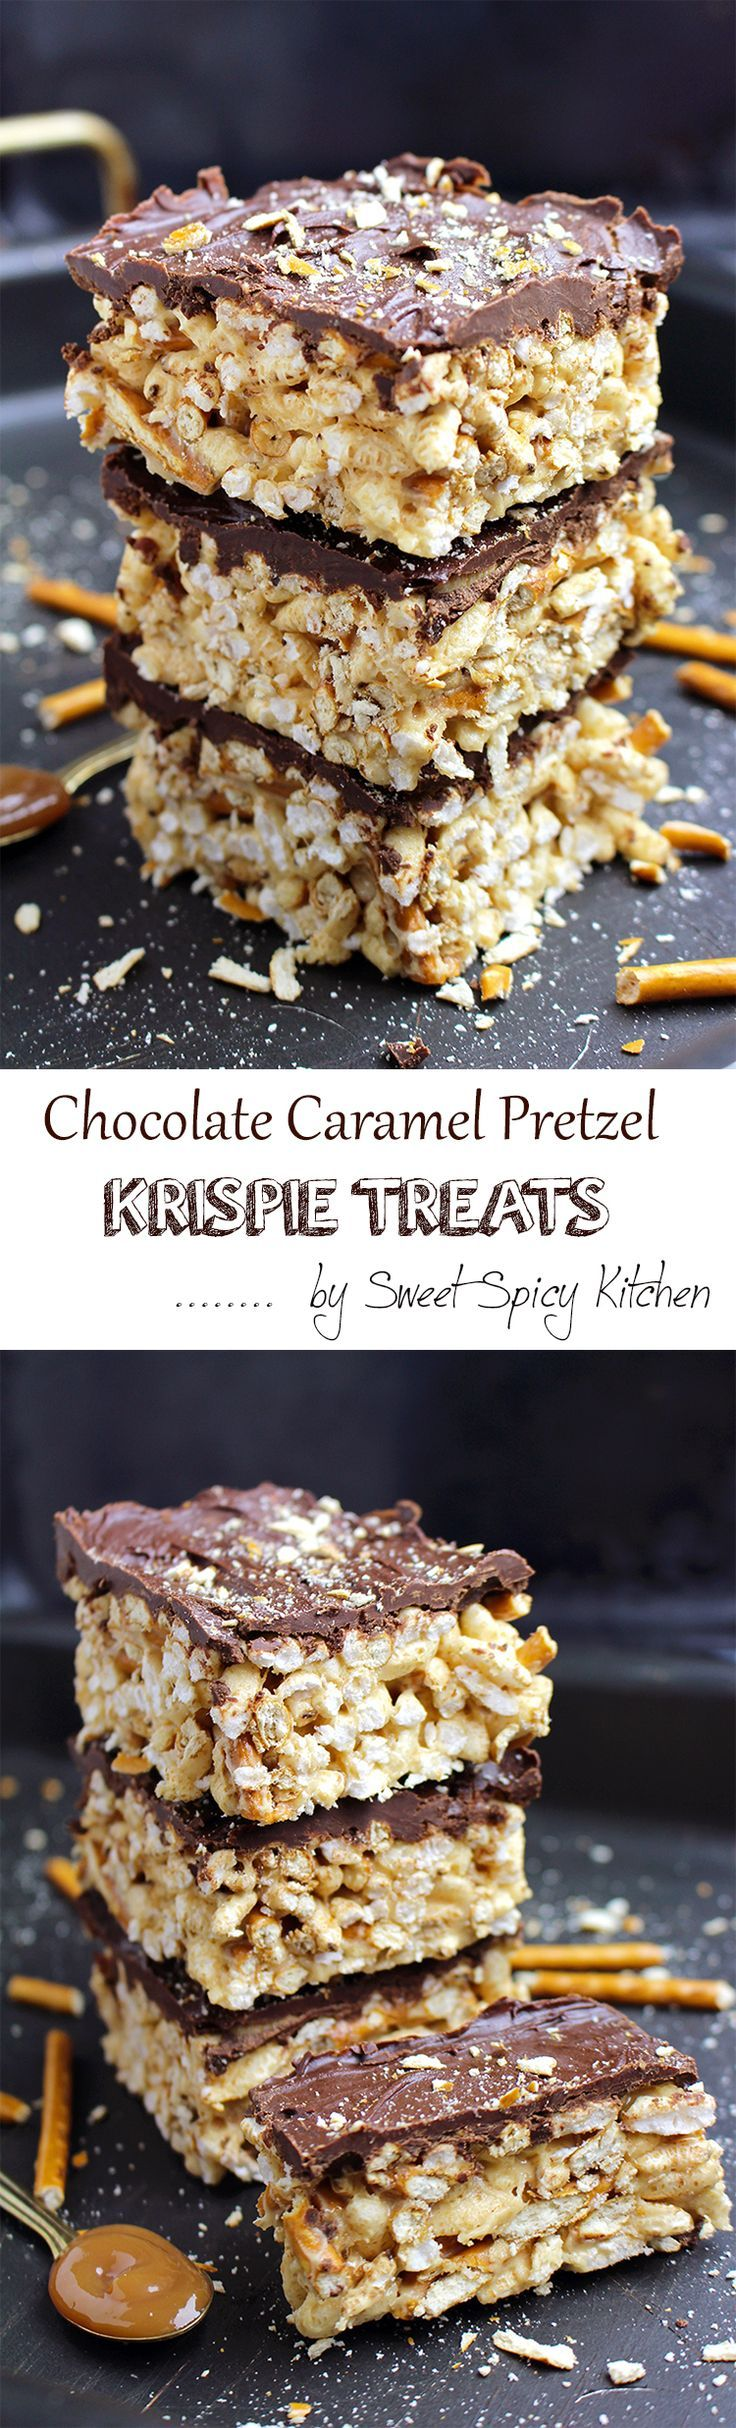 Time for snack?  Looking for a quick and delicious meal? Chocolate Caramel Pretzel Krispie Treats is just what you need.. Delicious brunch recipe perfect for busy days.. Crunchy crispy rice and pretzels combined with melted marshmallow and caramel sauce, coated in chocolate… mmmm  yummy… I really love this quick and easy combination. It takes only 10 minutes...Read More »